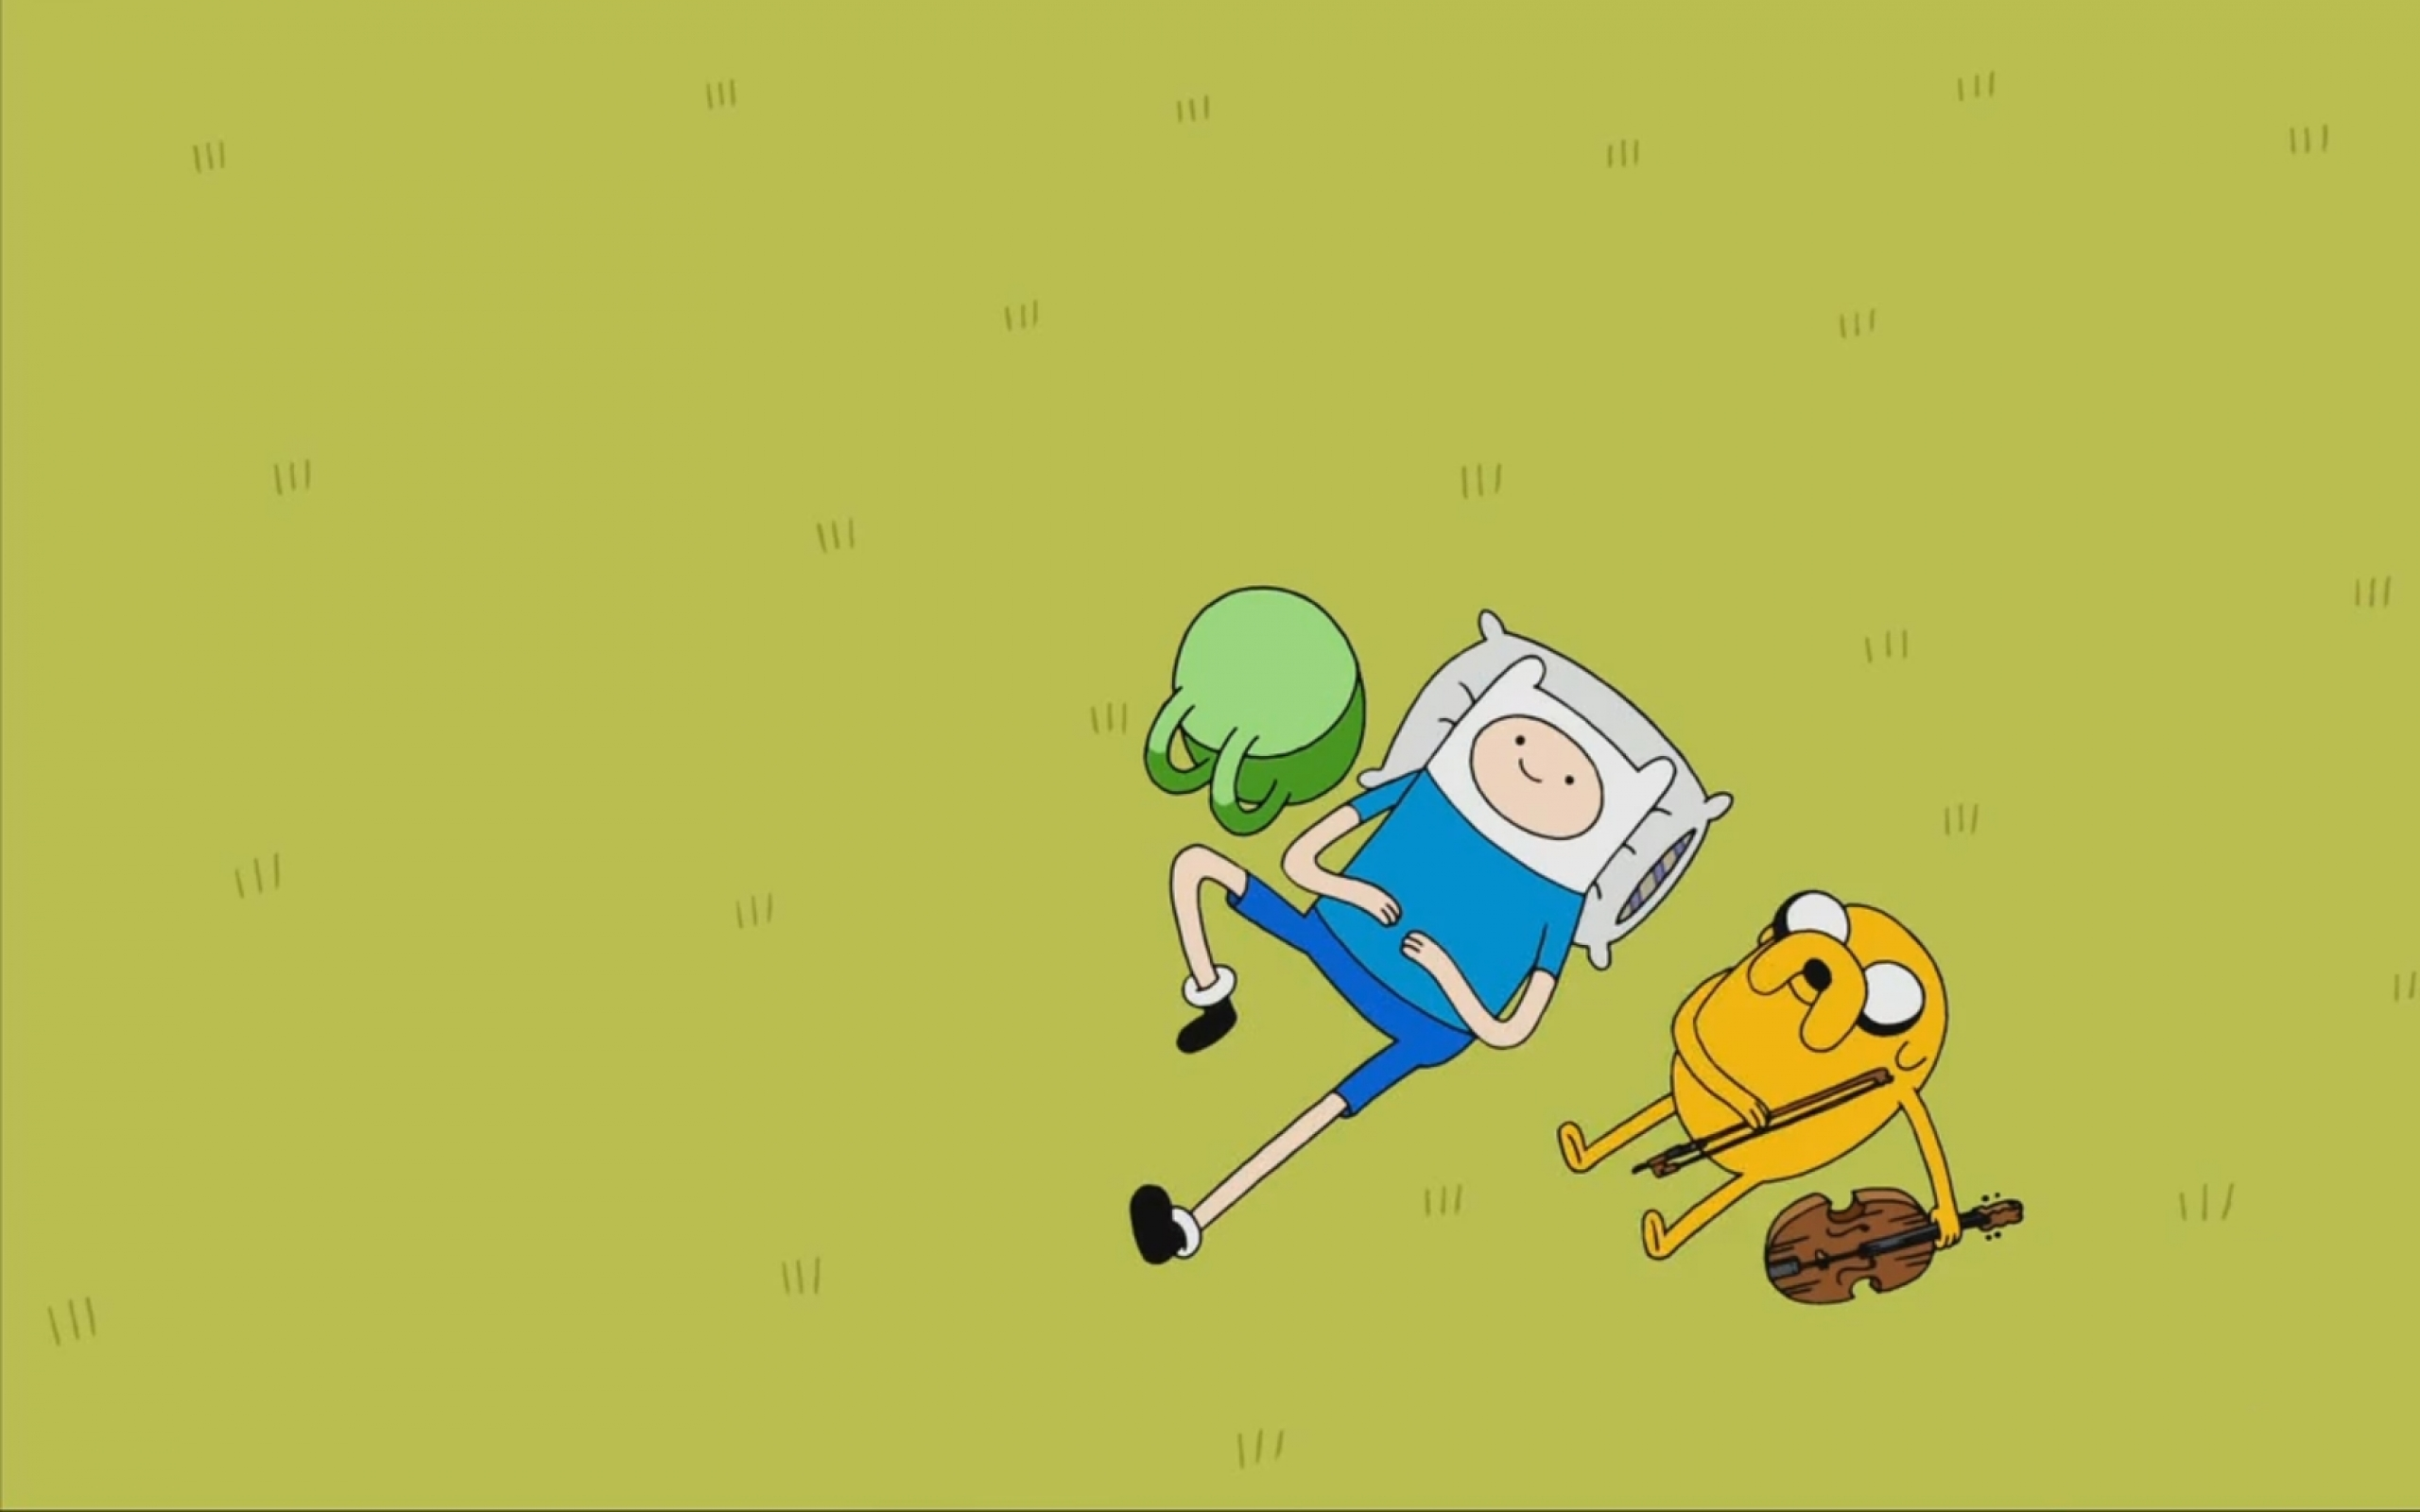 2560 x 1600 - 594k - jpg 5410 Adventure Time Wallpaper Finn ...